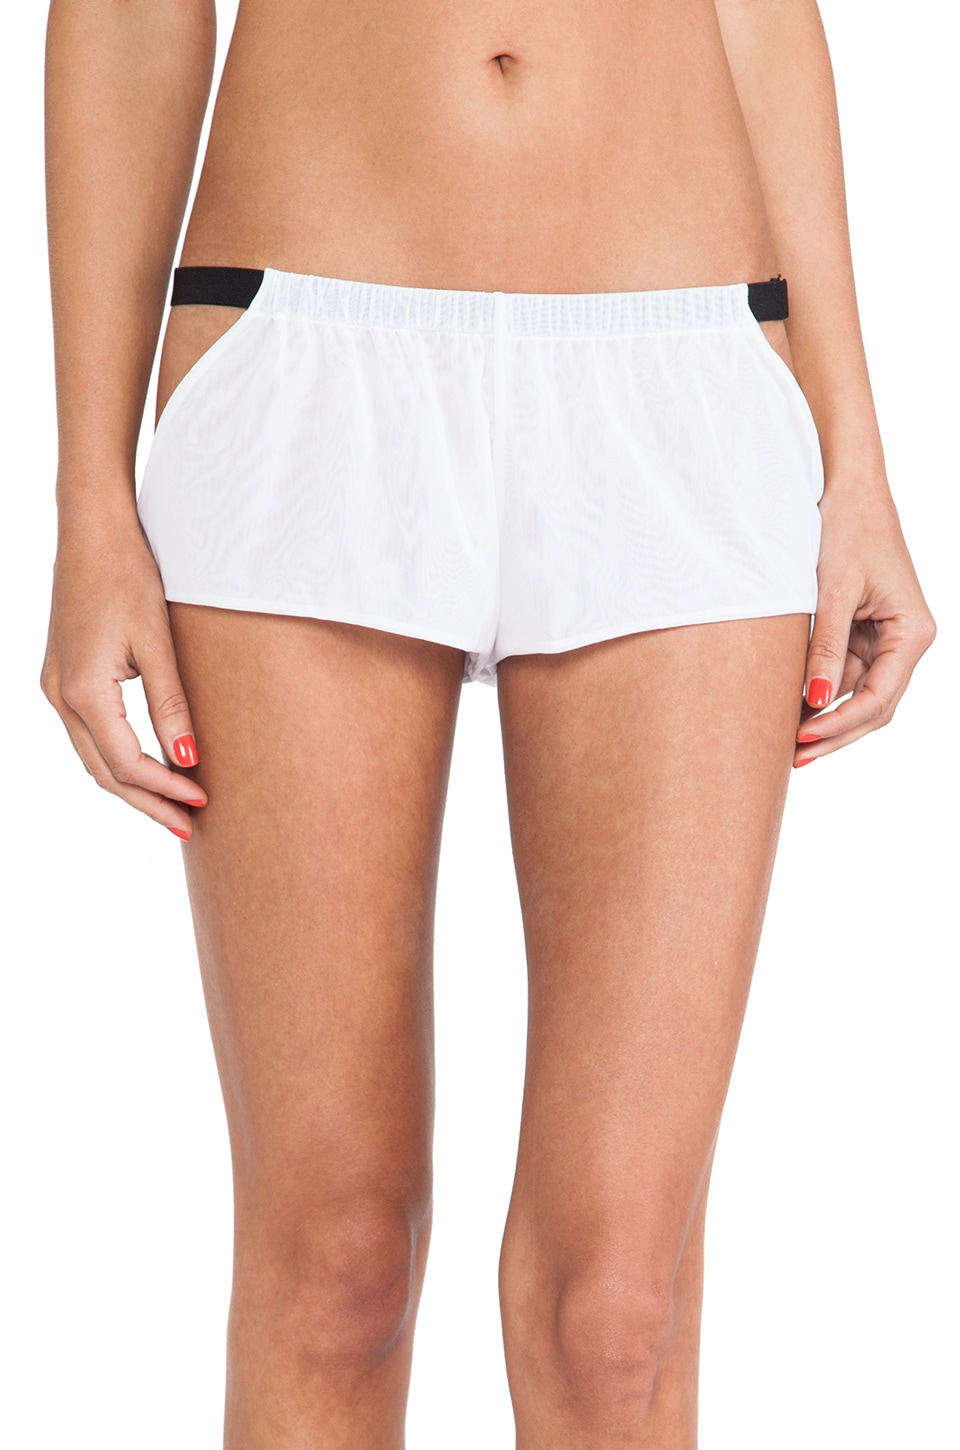 NOE Undergarments Peter Tap Short in White